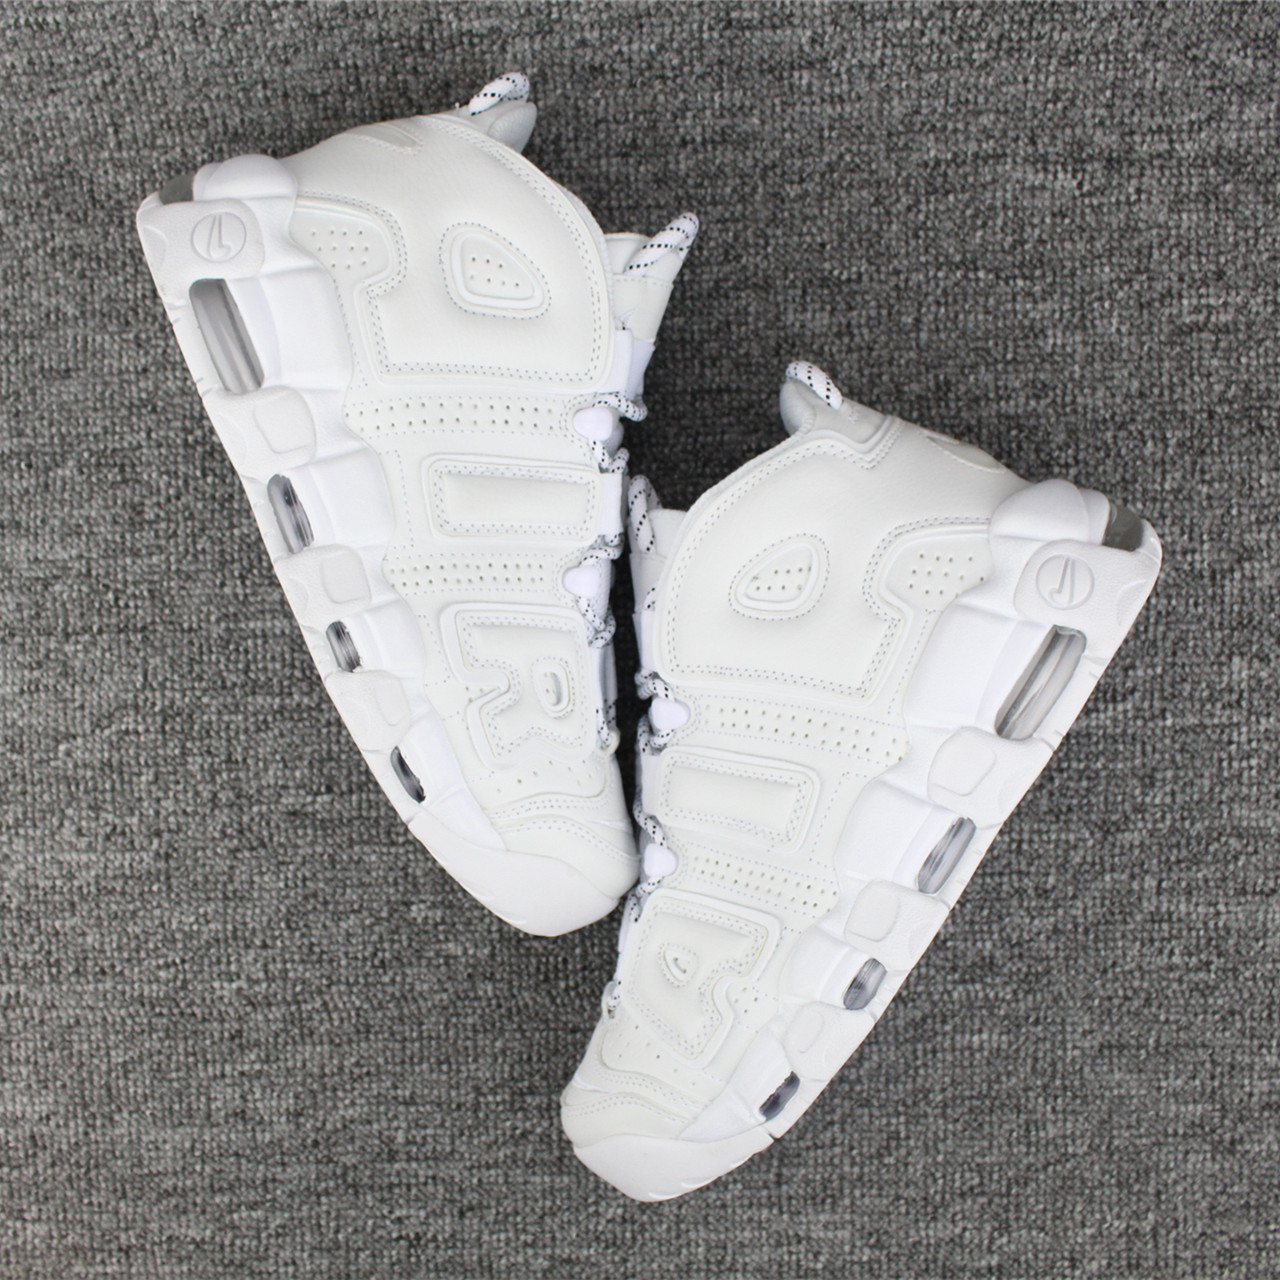 Nike Air More Uptempo 96 All White Shoes